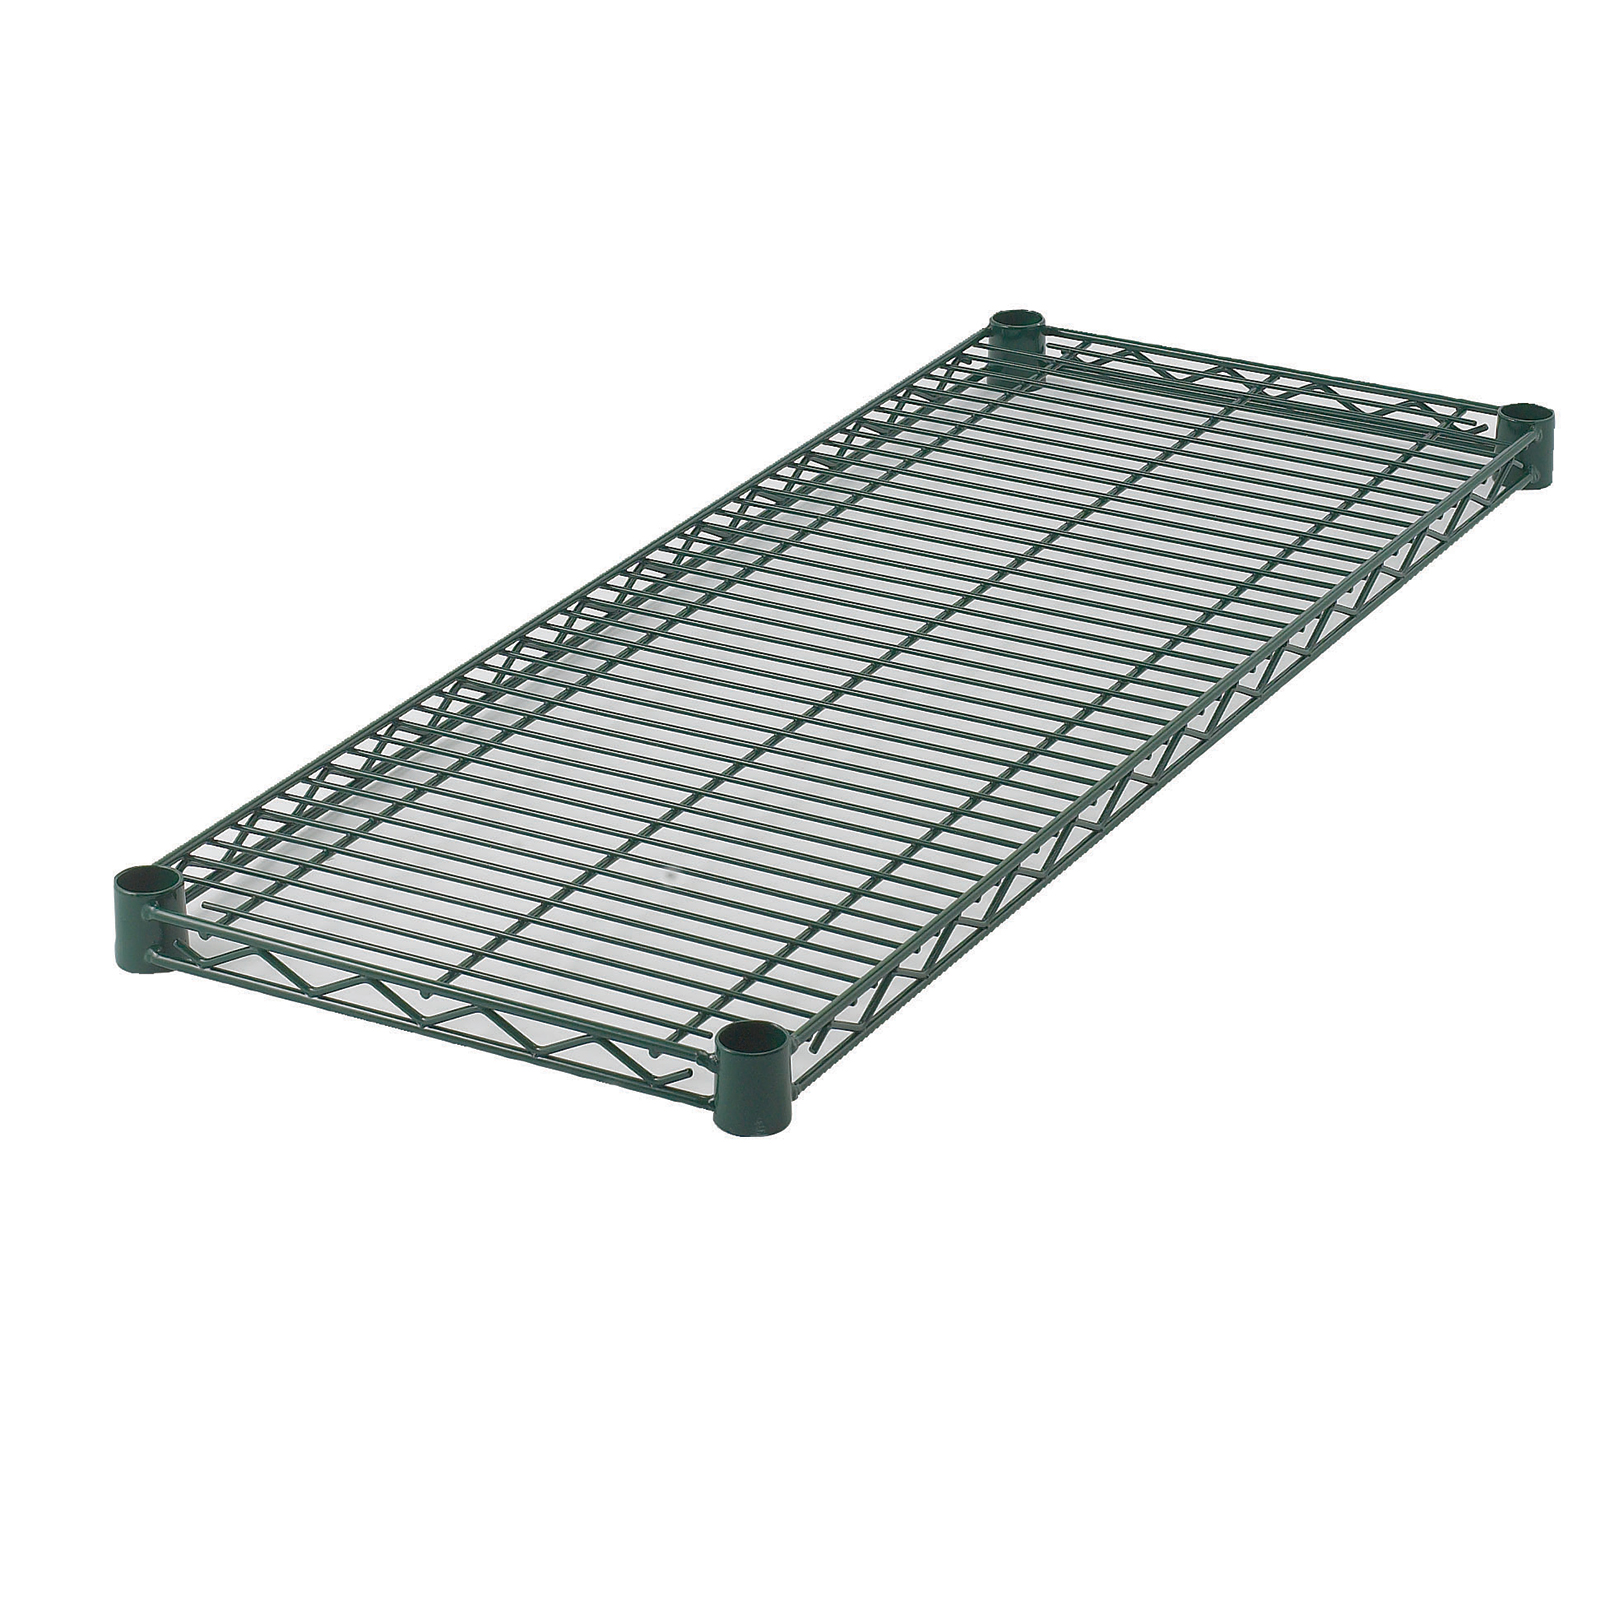 Winco VEX-1424 shelving, wire